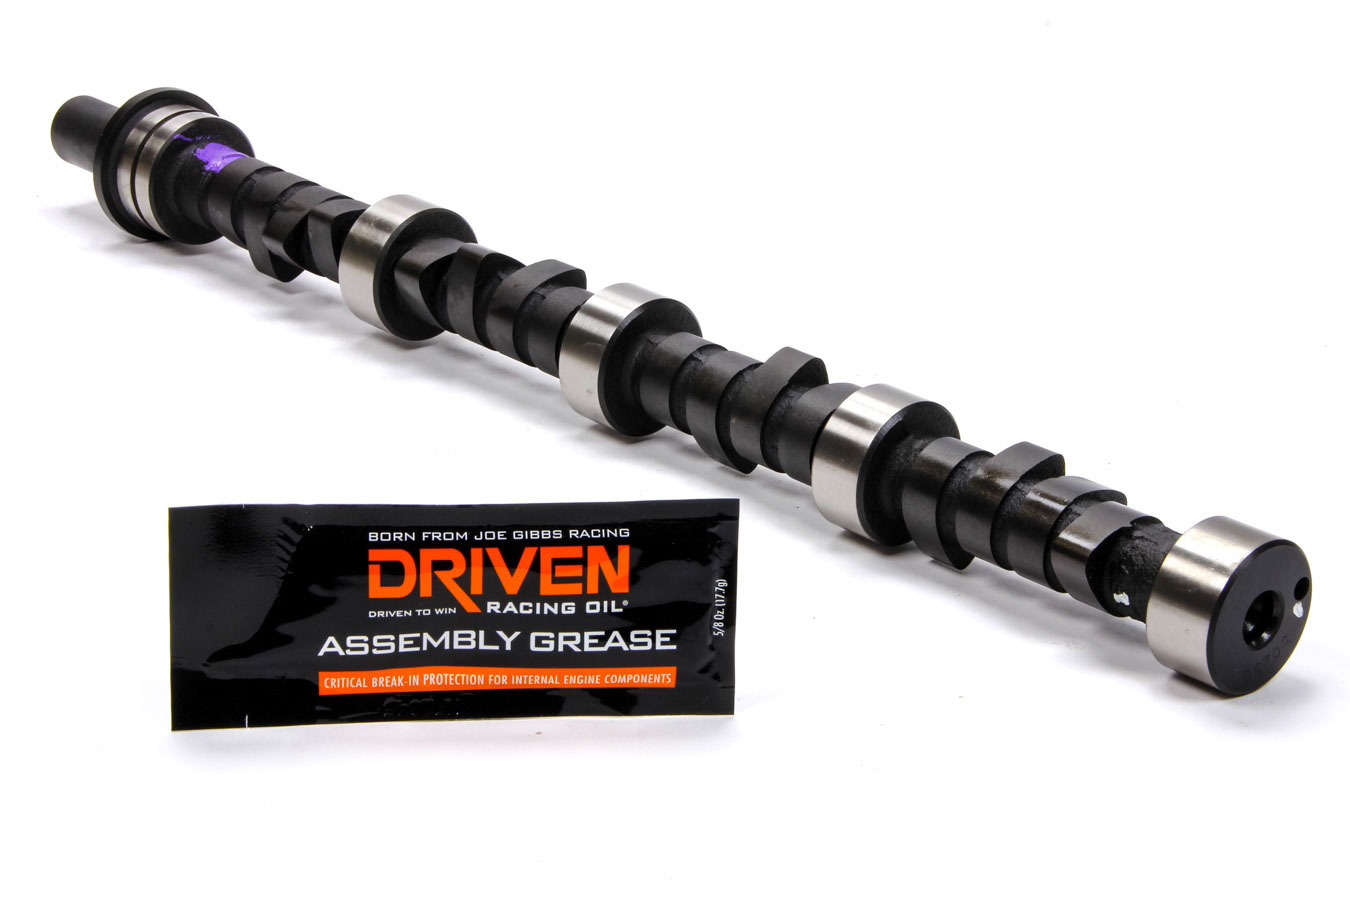 Crower 50230 Camshaft, Power Compu-Pro, Hydraulic Flat Tappet, Lift 0.446 / 0.451 in, Duration 260 / 266, 112 LSA, 1500 / 4000 RPM, Small Block Buick / Rover V8, Each